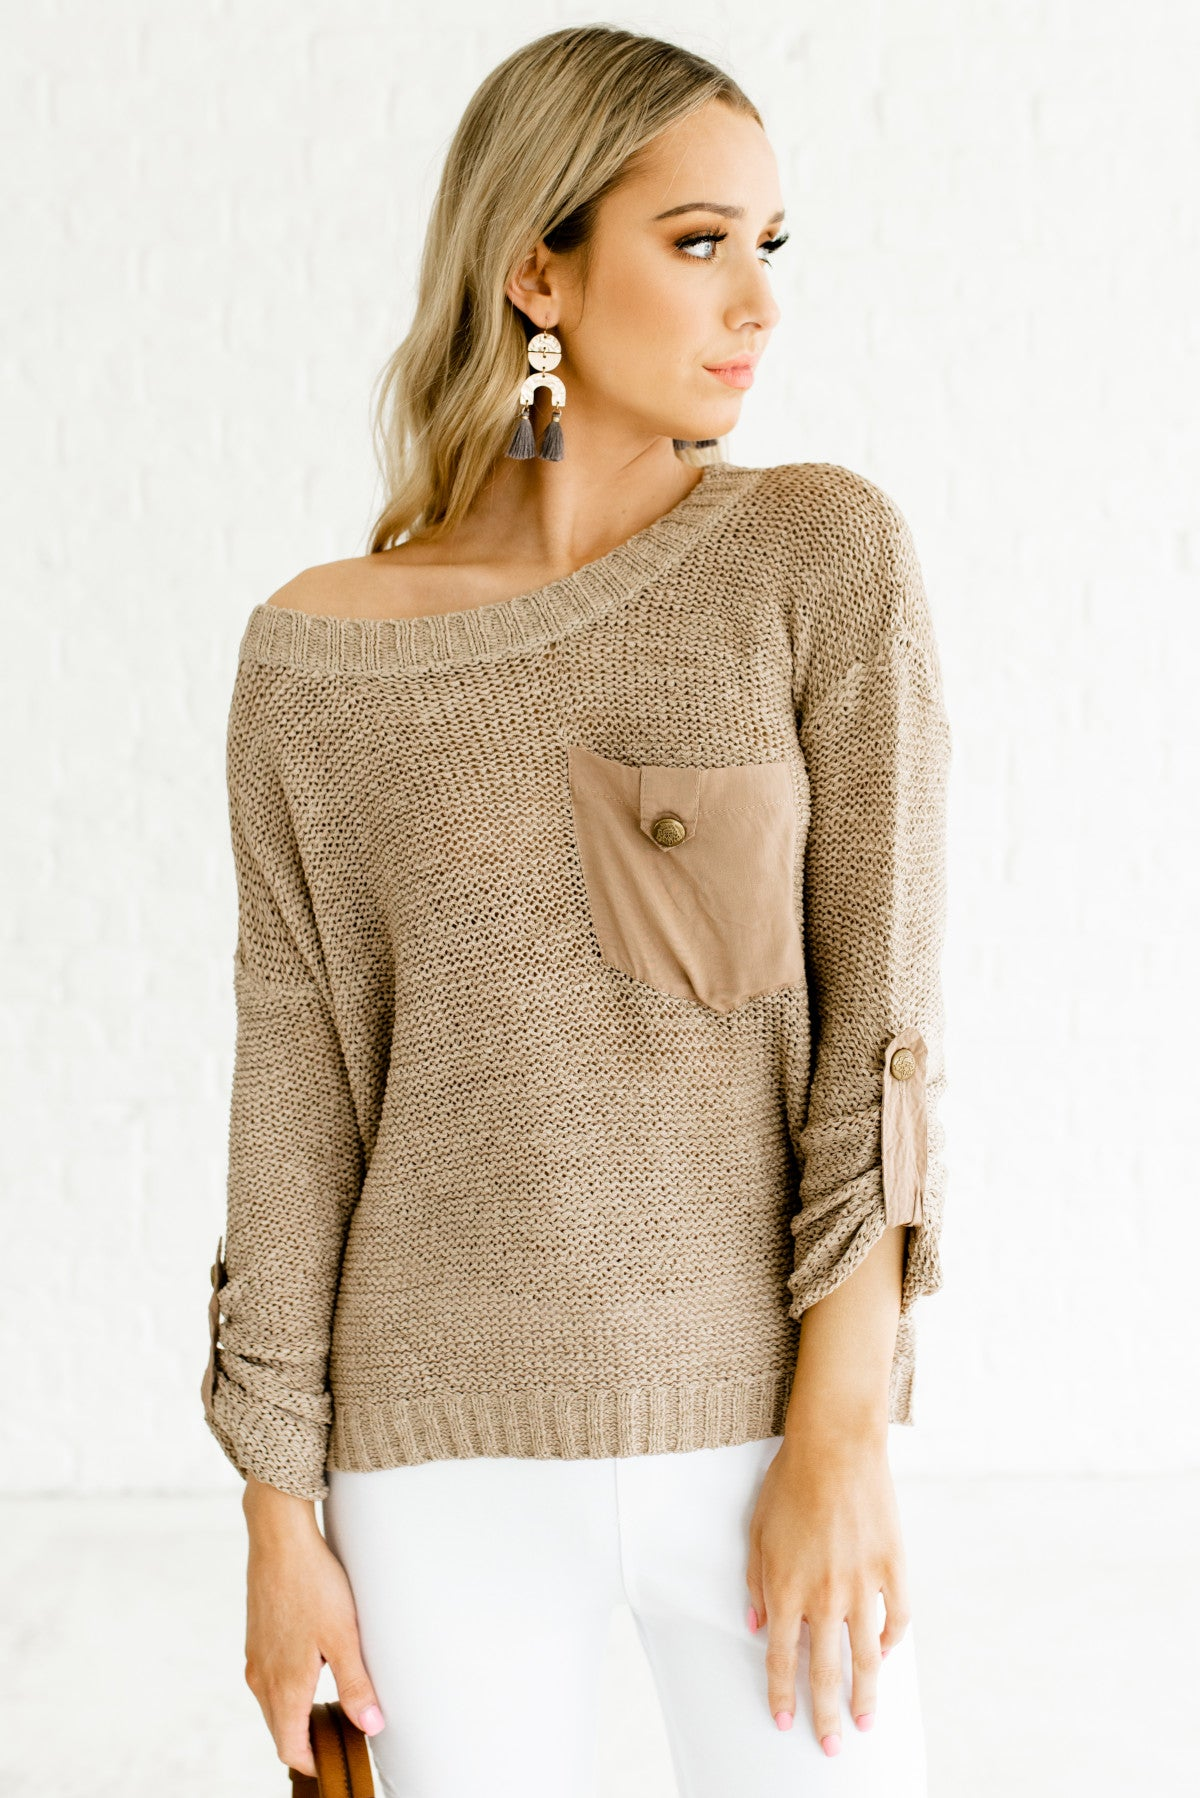 Light Brown Knit Satin Button Sweaters Affordable Online Boutique